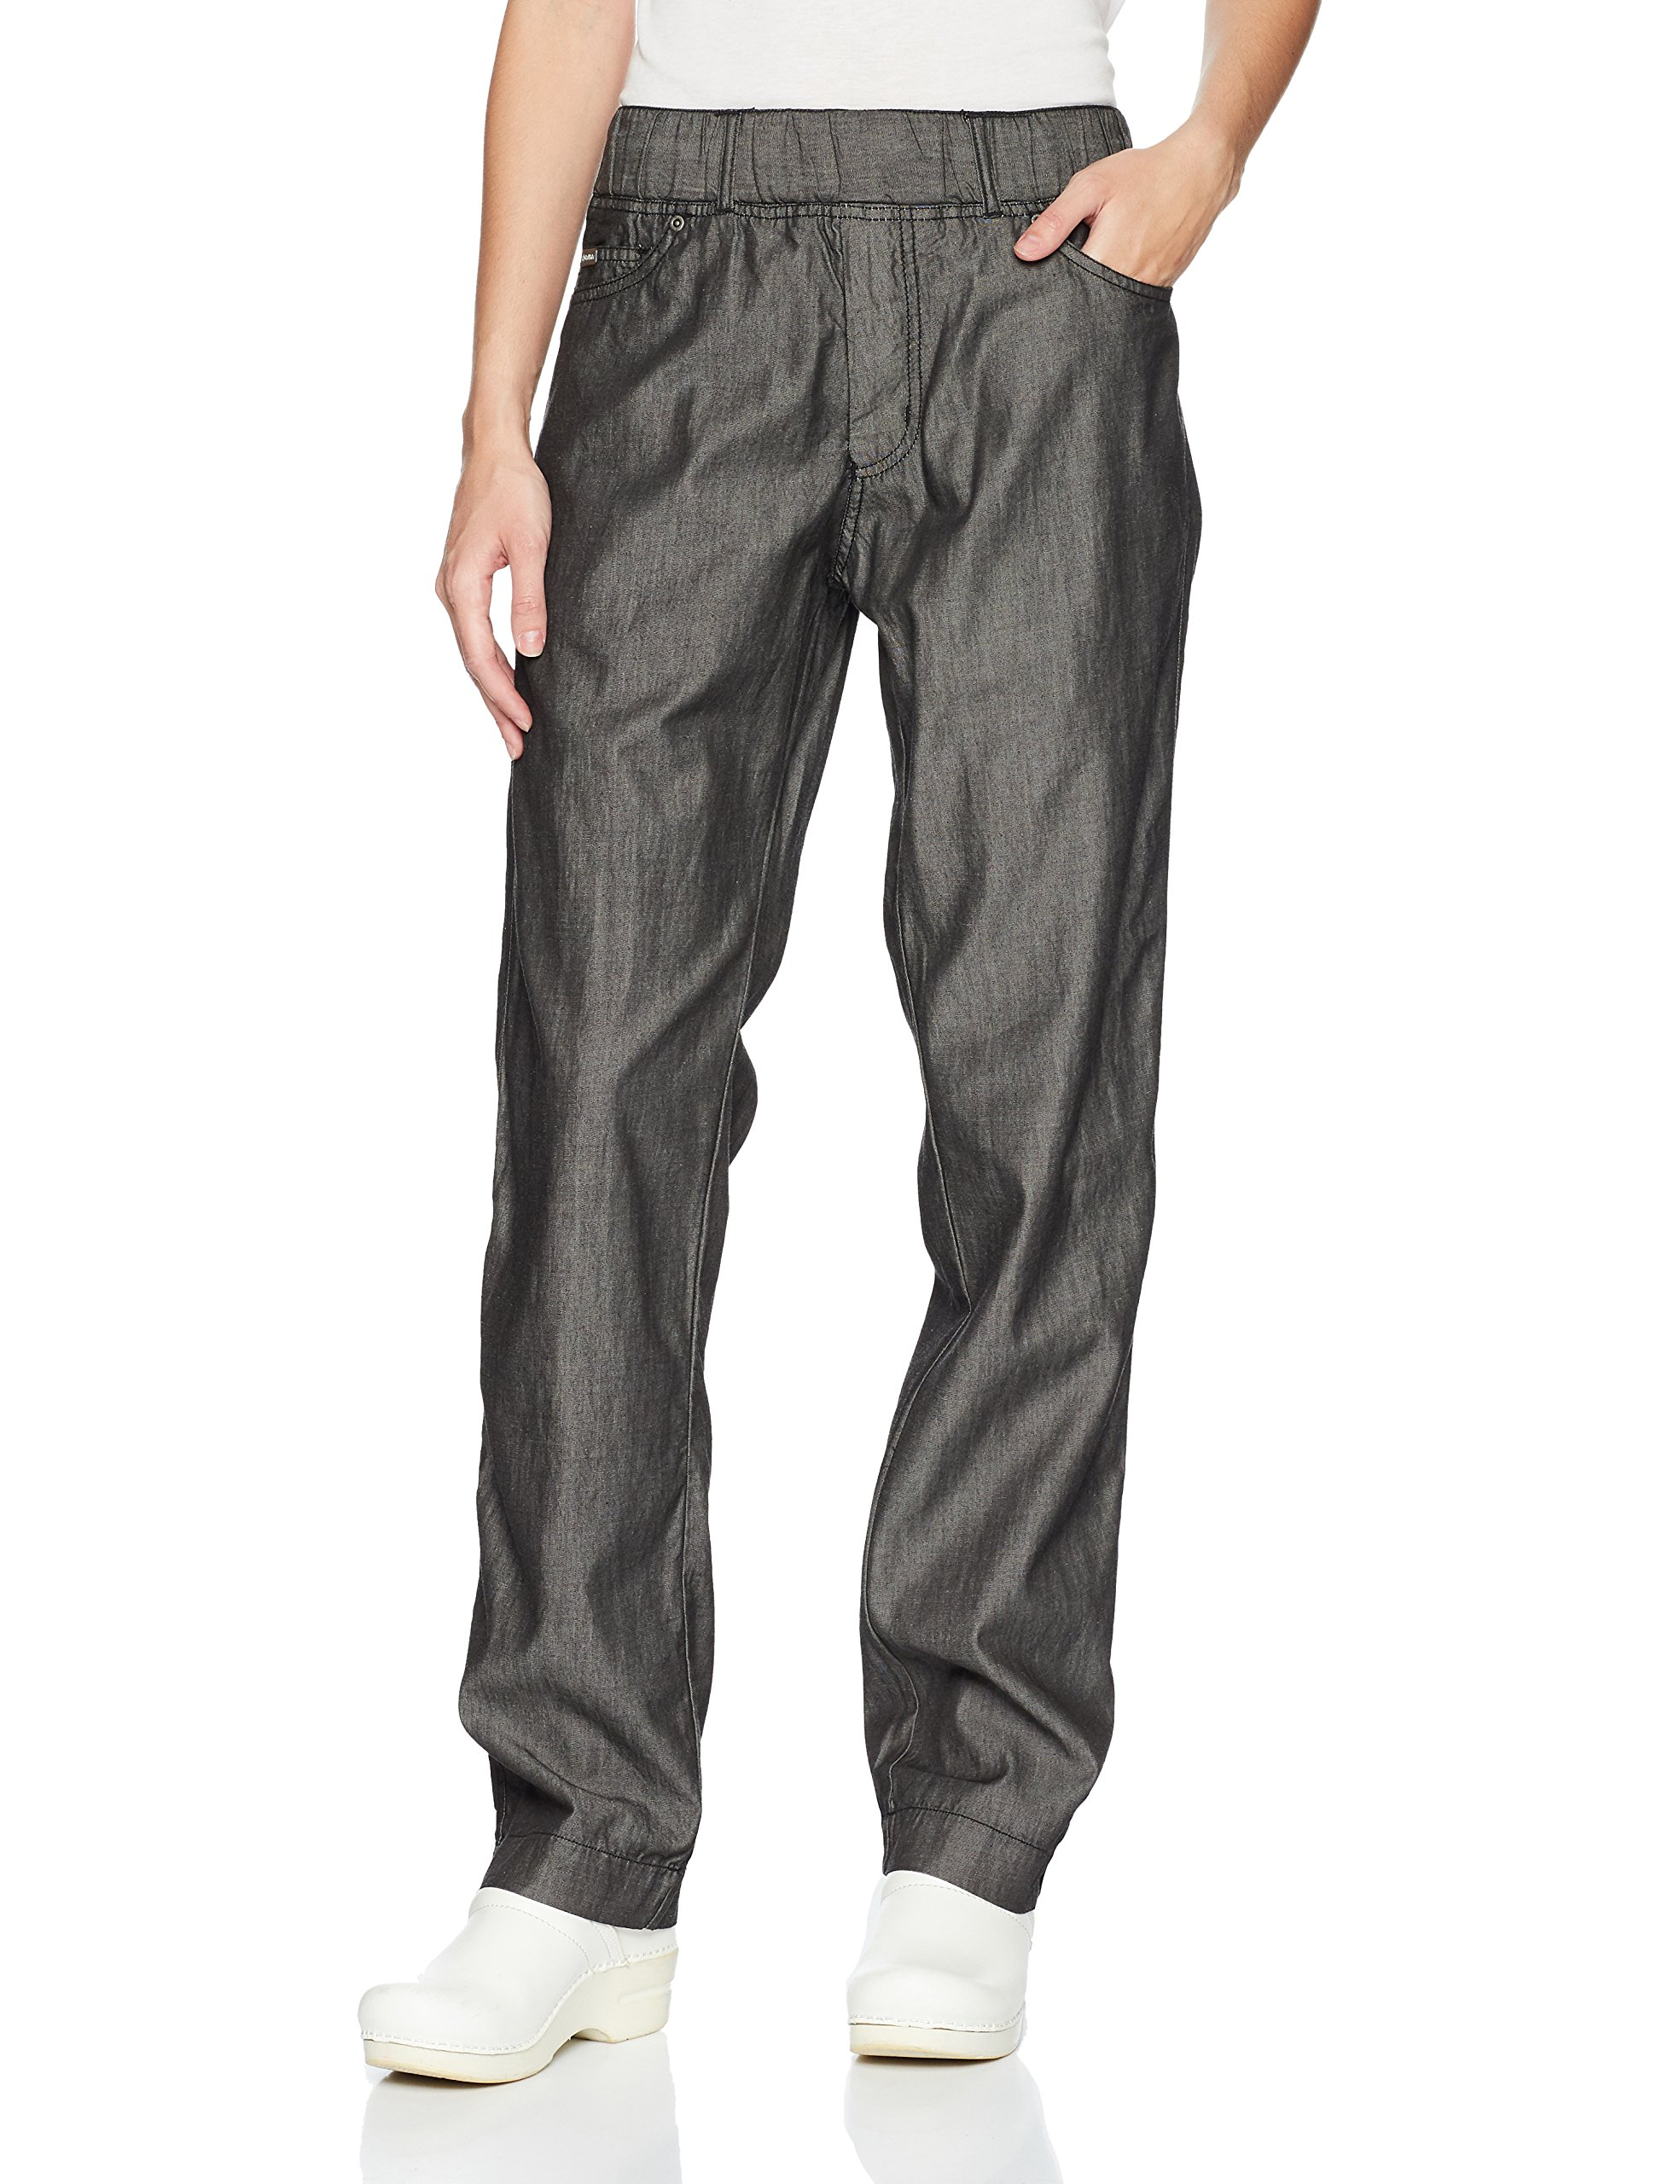 Chef Works Men's Gramercy Chef Pants, Black, Large